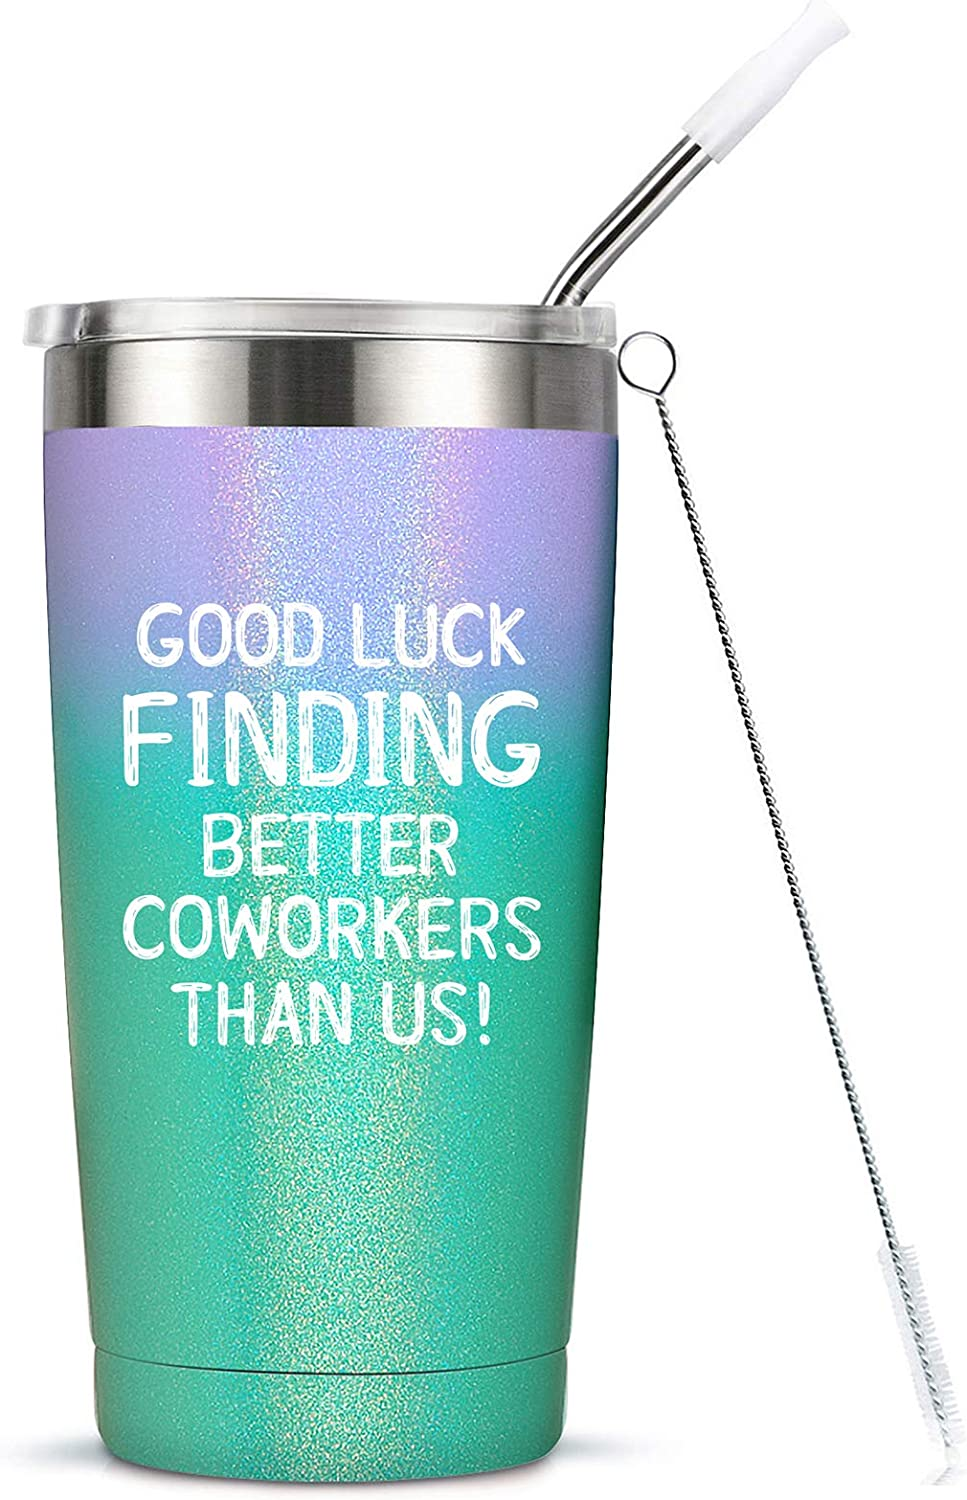 Amazon Com Going Away Gift For Coworker Women Goodbye Farewell Leaving Cup For Colleague Boss Co Worker Friends Good Luck Finding Better Coworkers Than Us Tumbler Cup Mug 20 Ounce Kitchen Dining